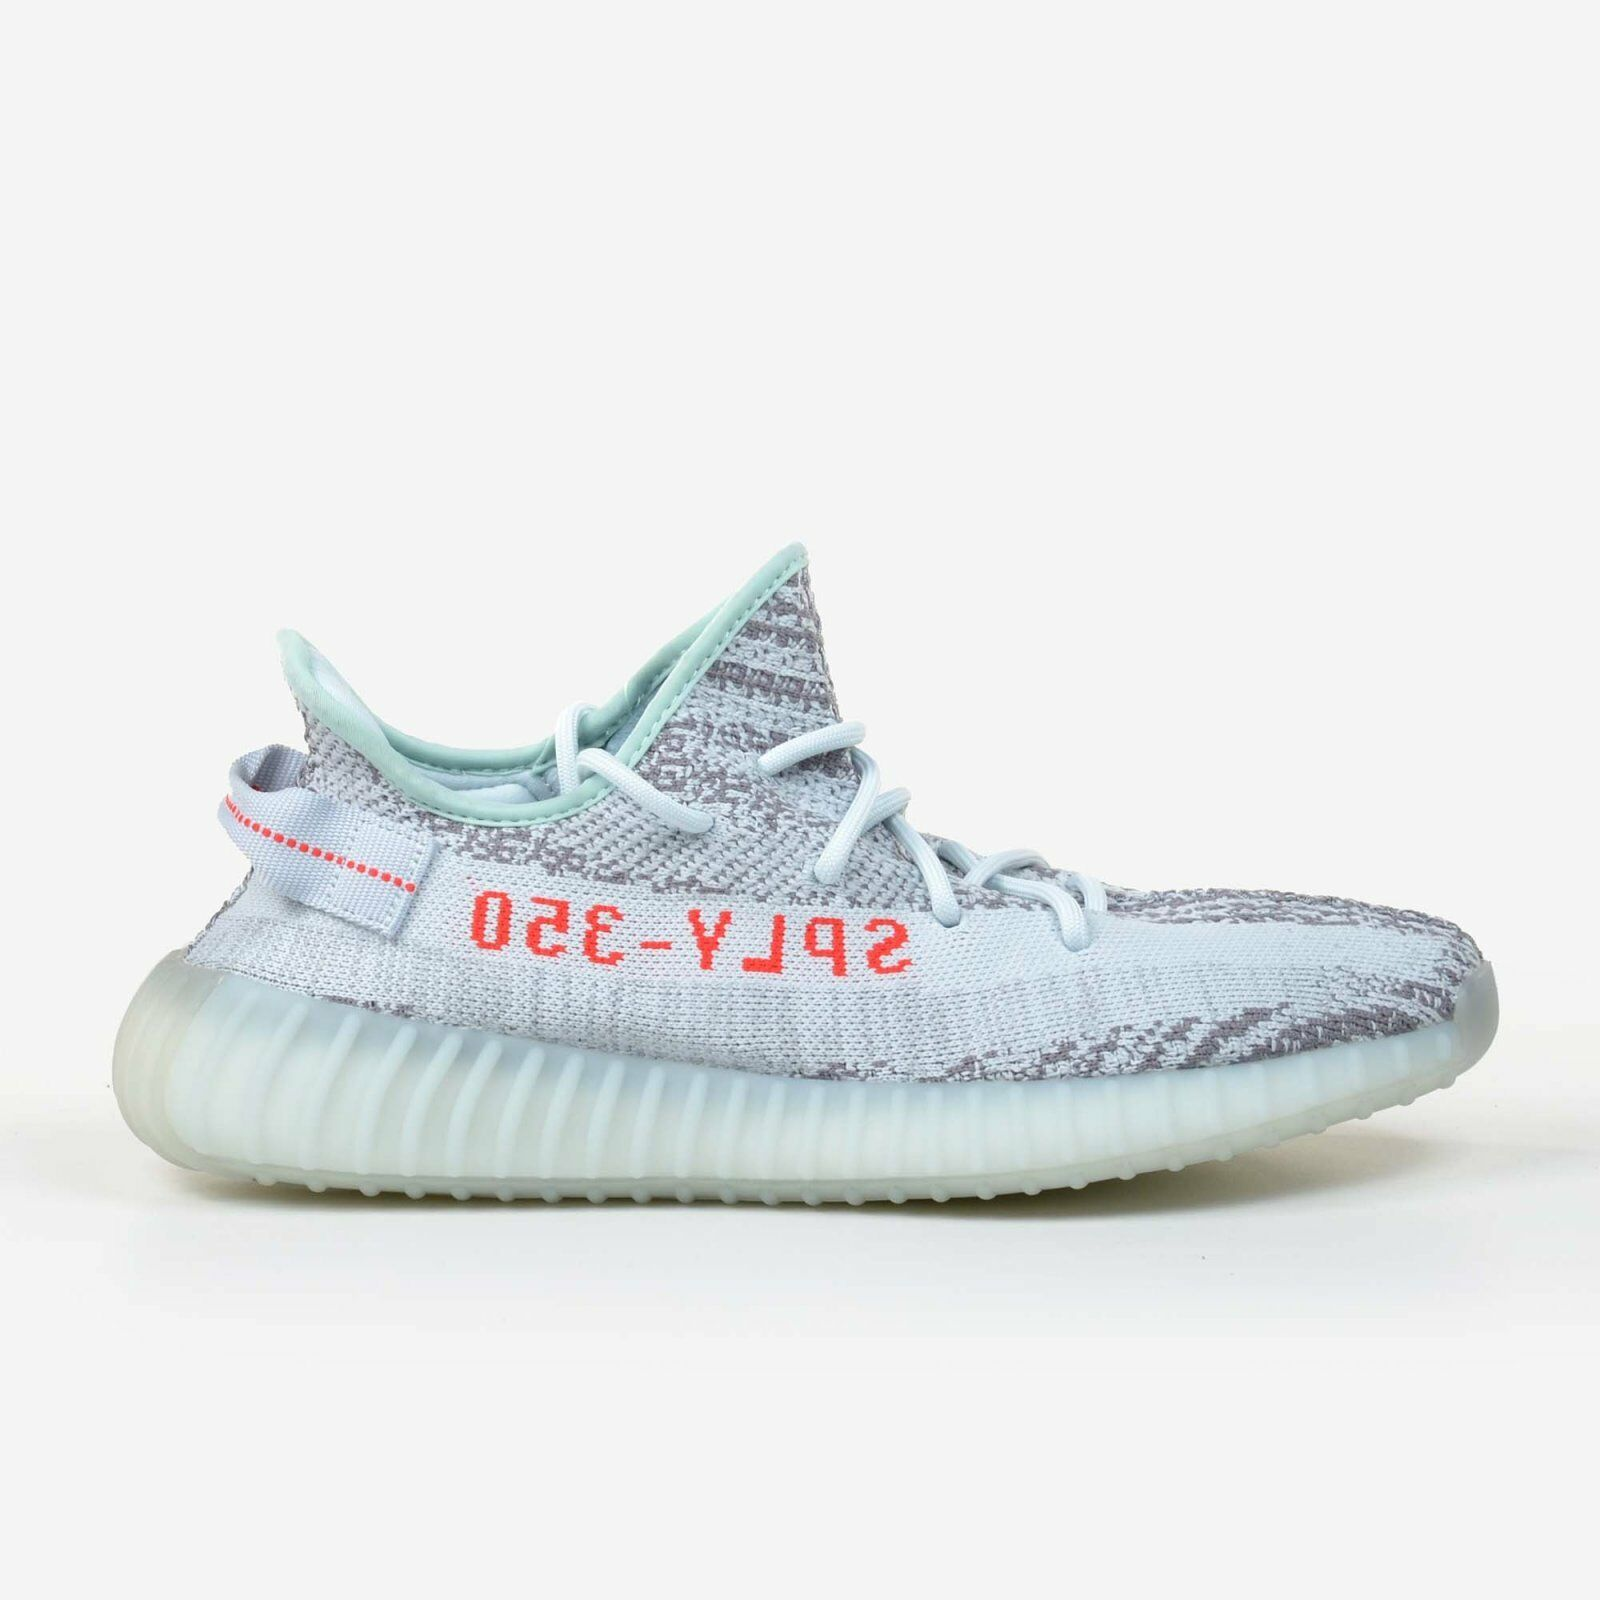 Adidas Yeezy Boost 350 V2 Size 10 bluee Tint Grey Red Same Day Shipping DS B37571